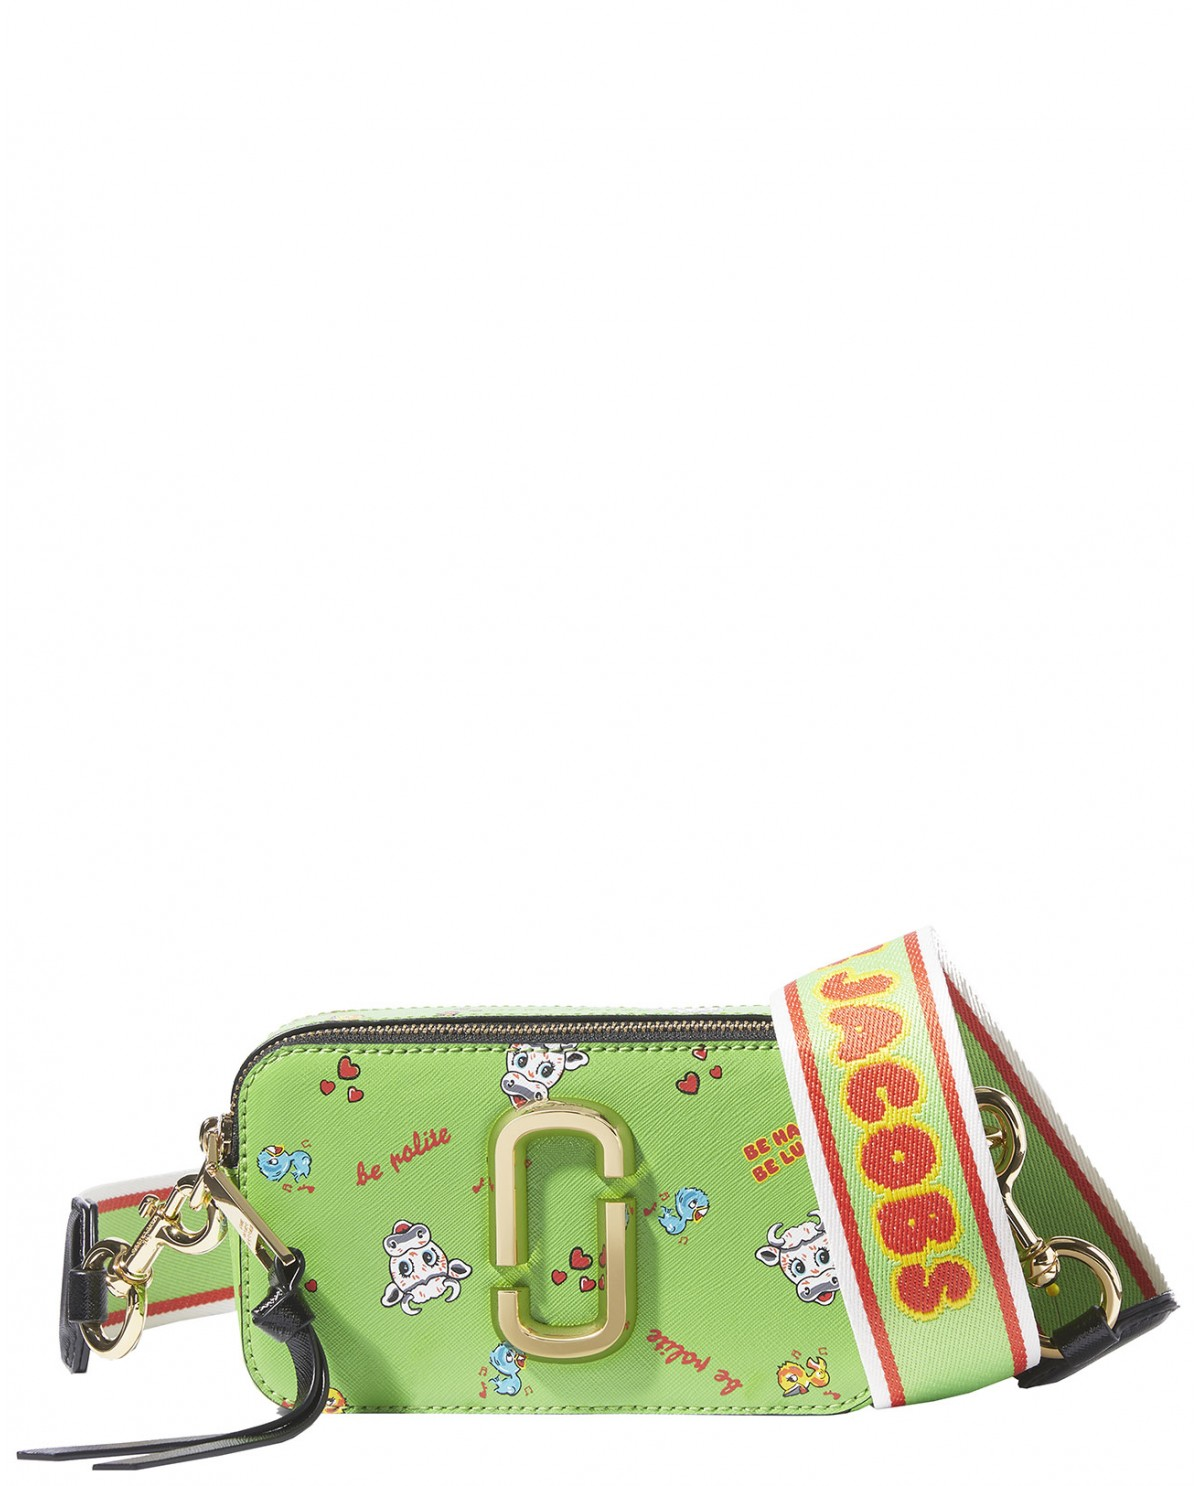 The Marc Jacobs x Magda Archer green...